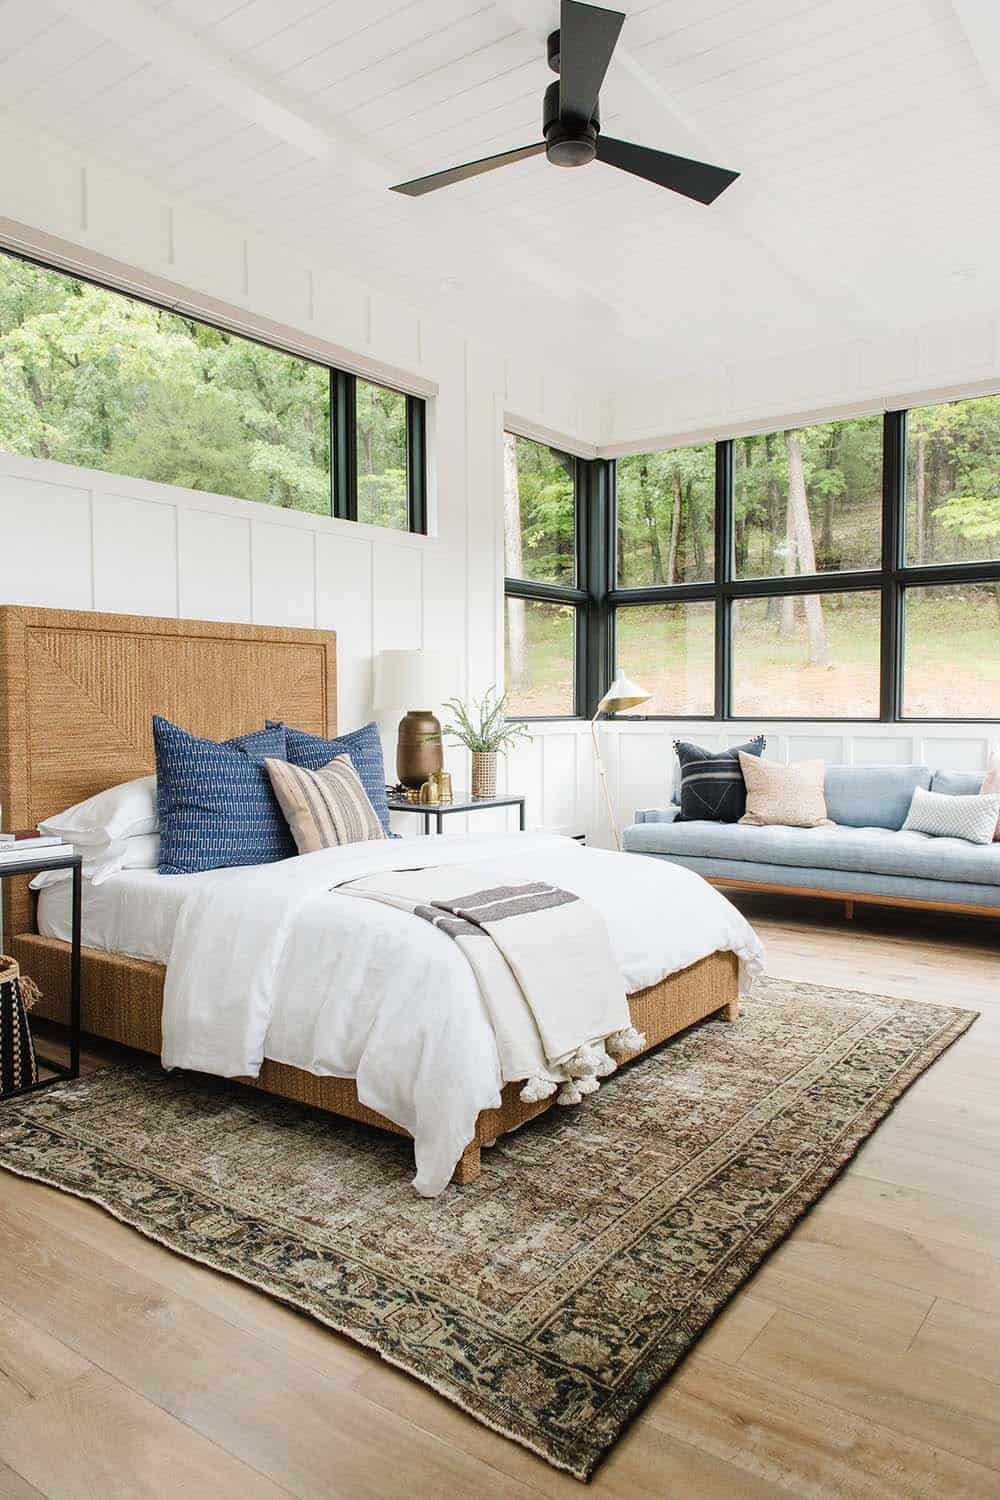 House Envy Modern Lake House In The Midwest With Stunning Details Modern Lake House Bedroom Design Home